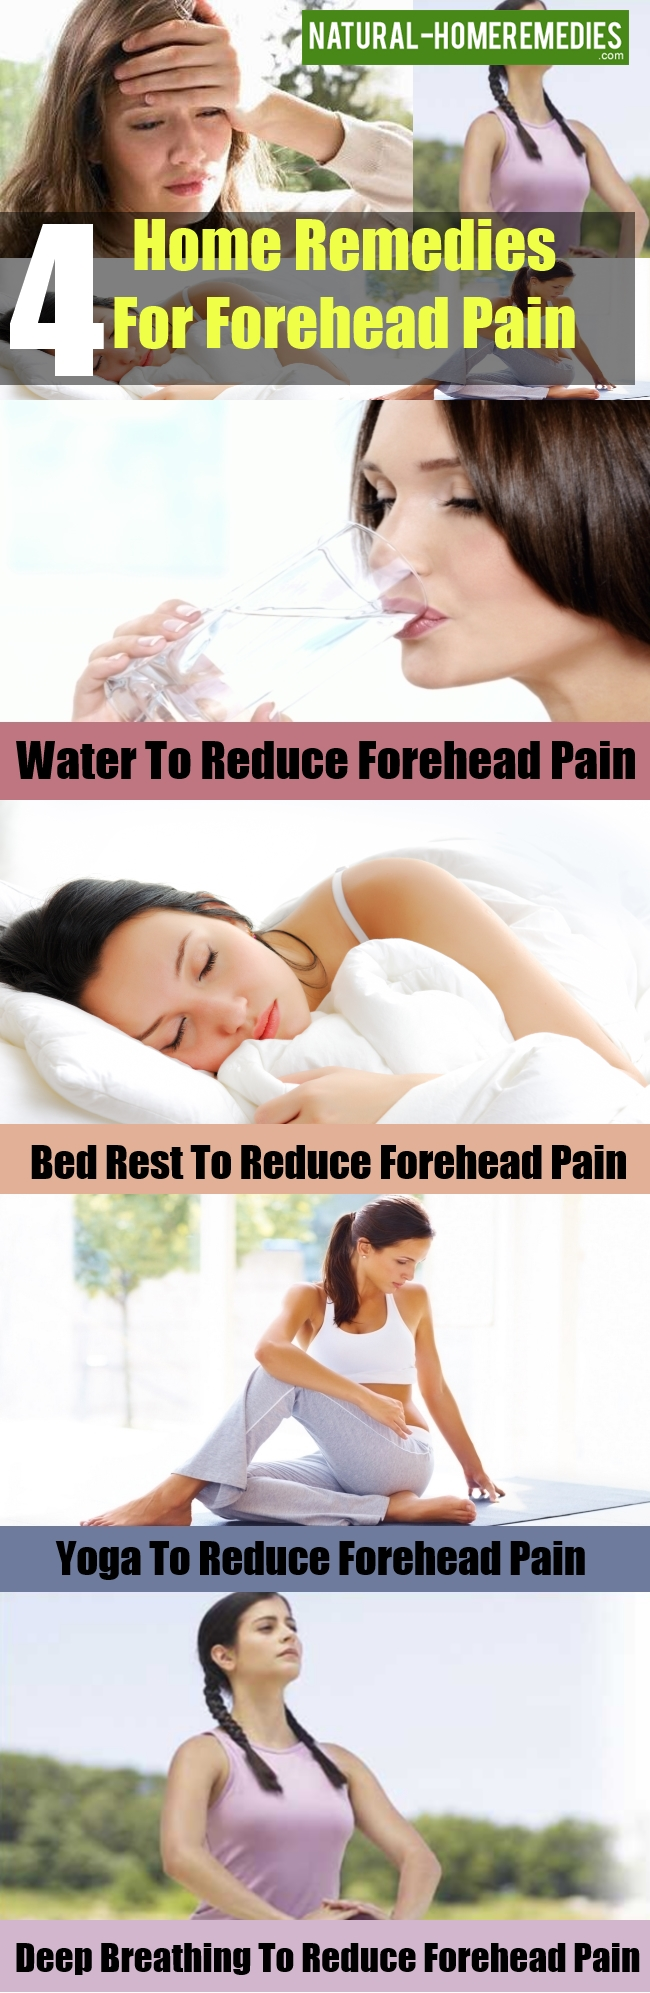 Home Remedies For Forehead Pain